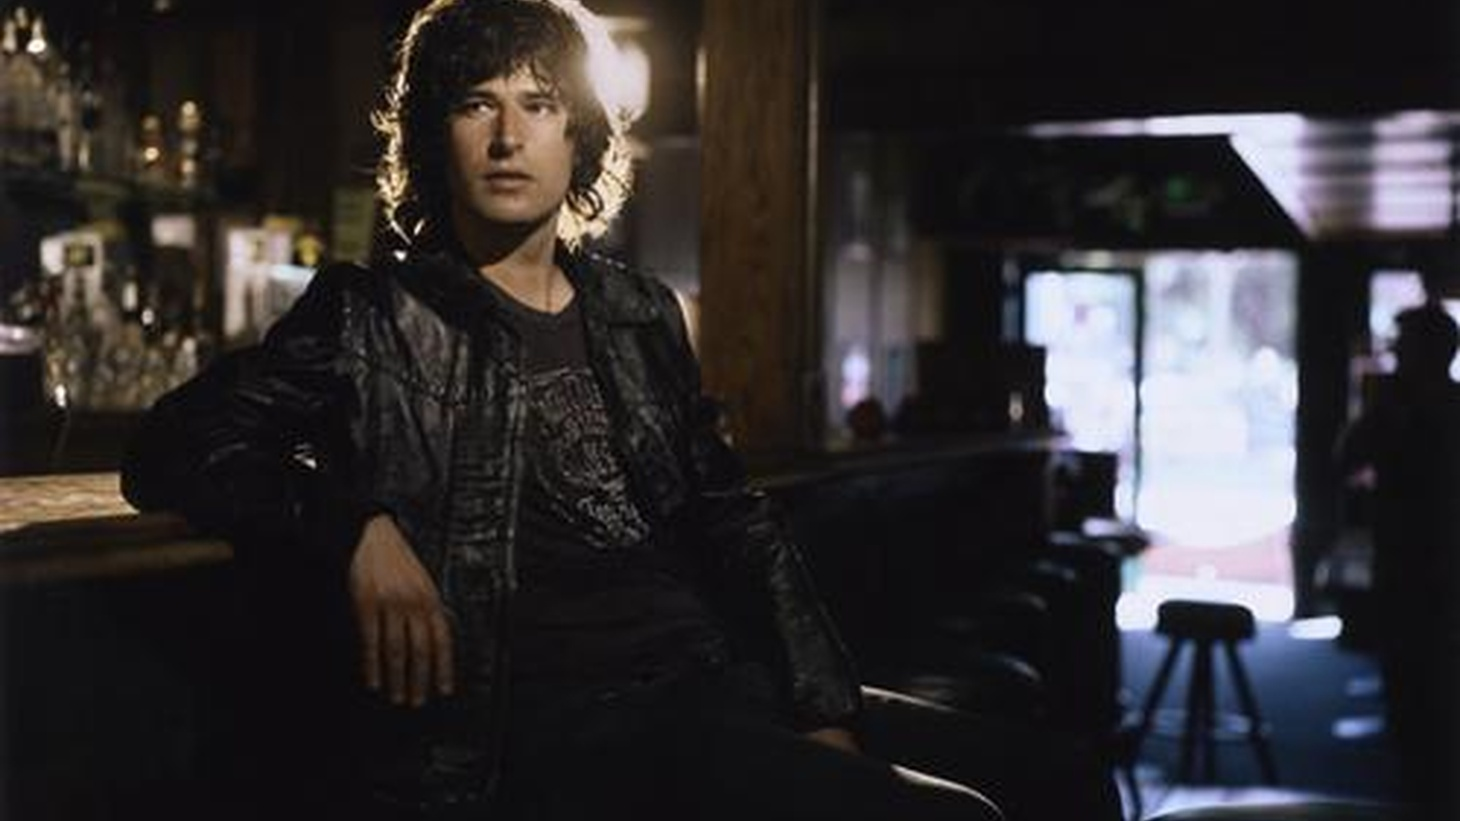 Pete Yorn's new album is a stripped down and liberated rock record. He'll share new material when he returns to Morning Becomes Eclectic for a live performance at 11:15am.